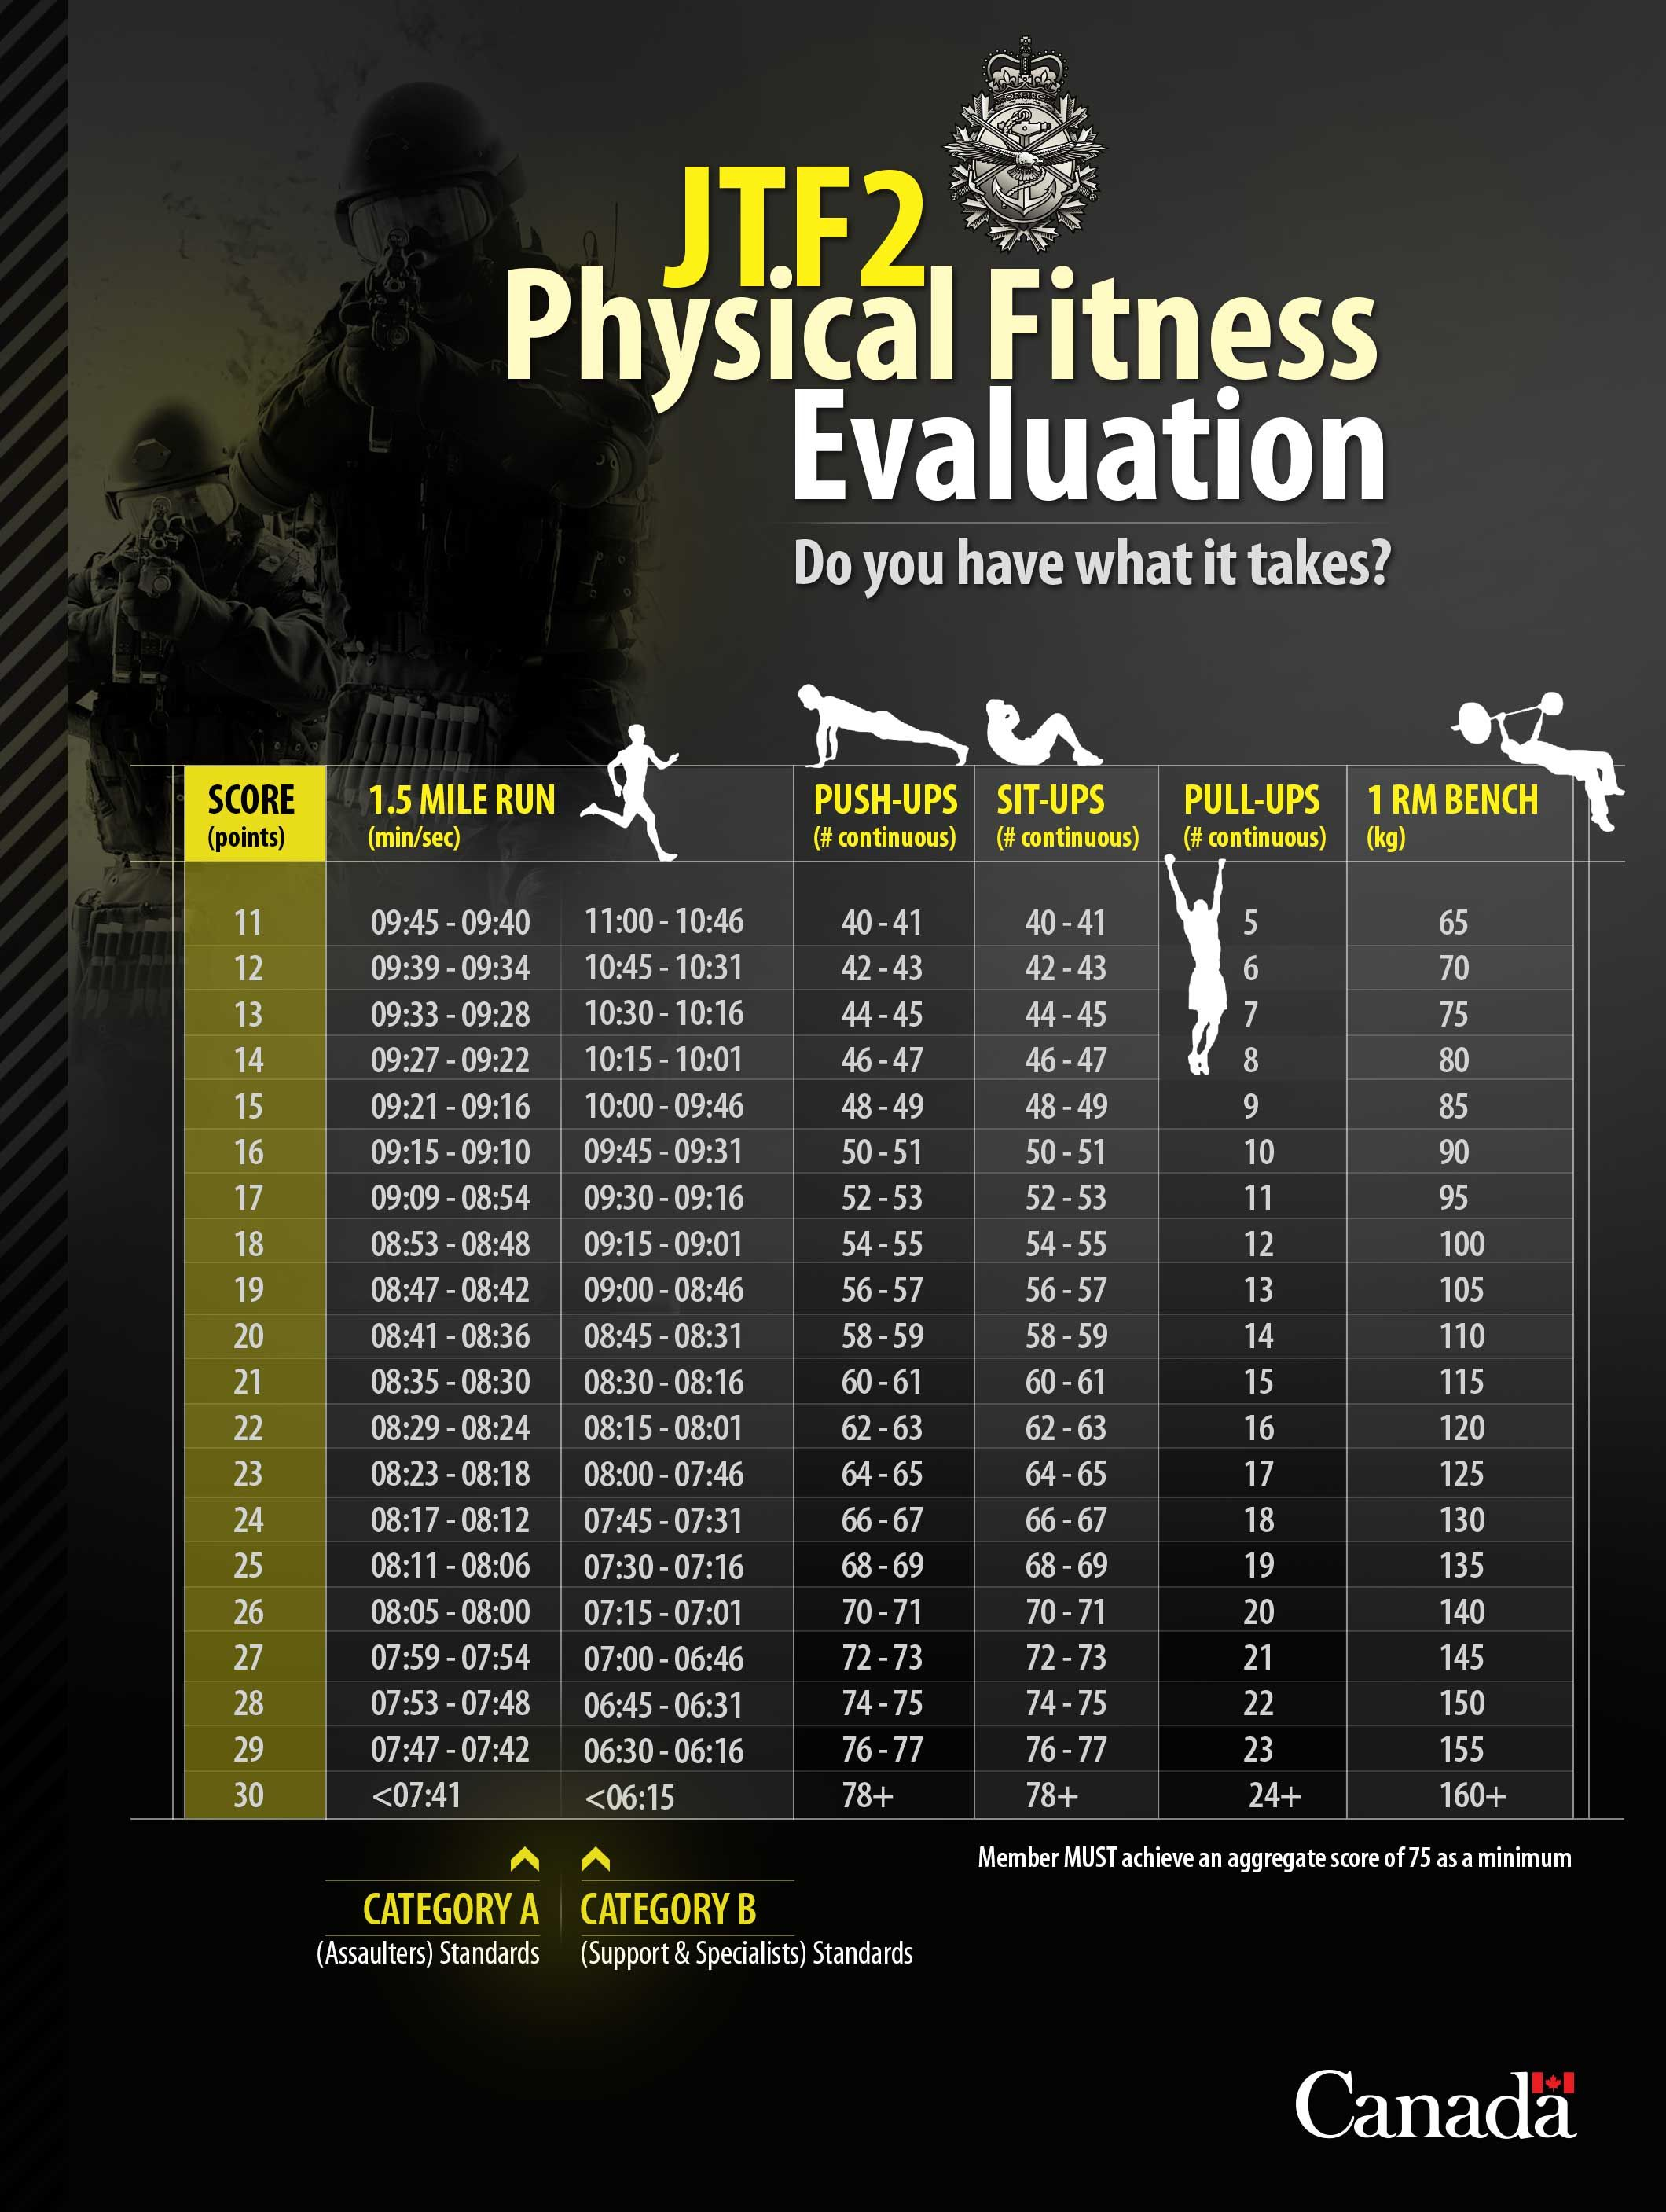 JTF2 Physical Fitness Evaluation Do you have what it